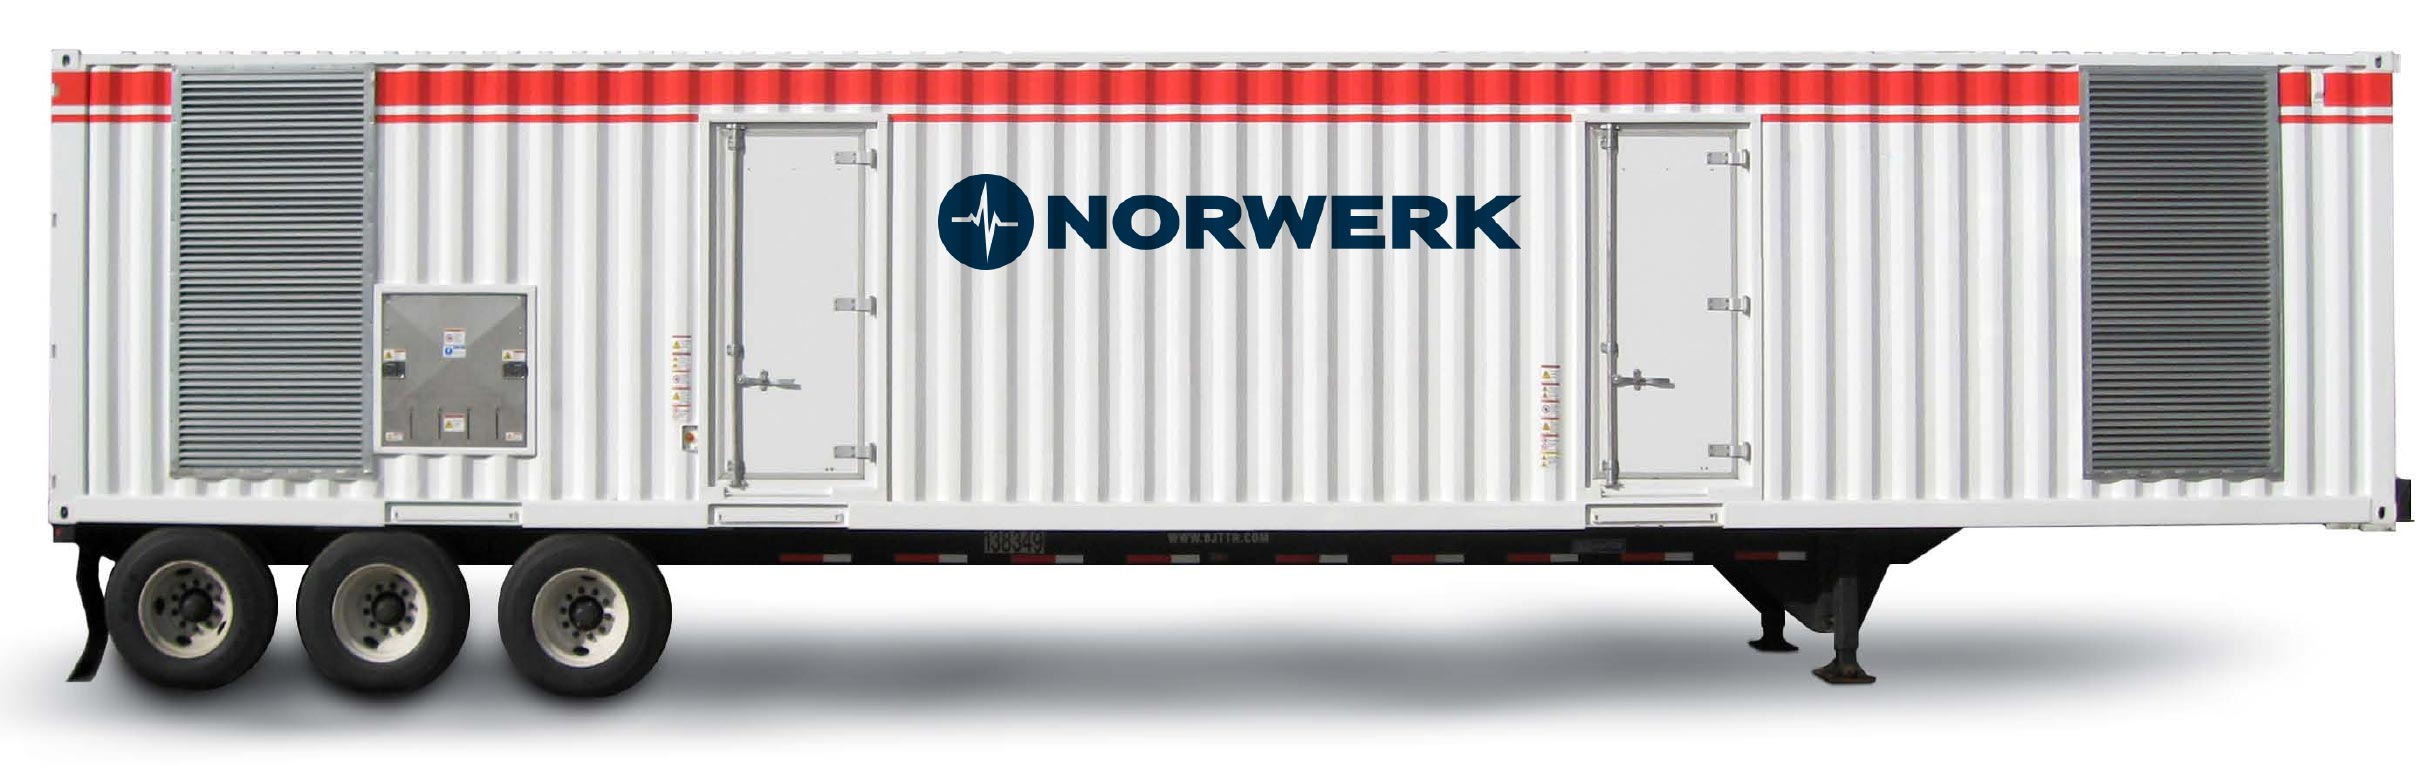 norwerk-trailer